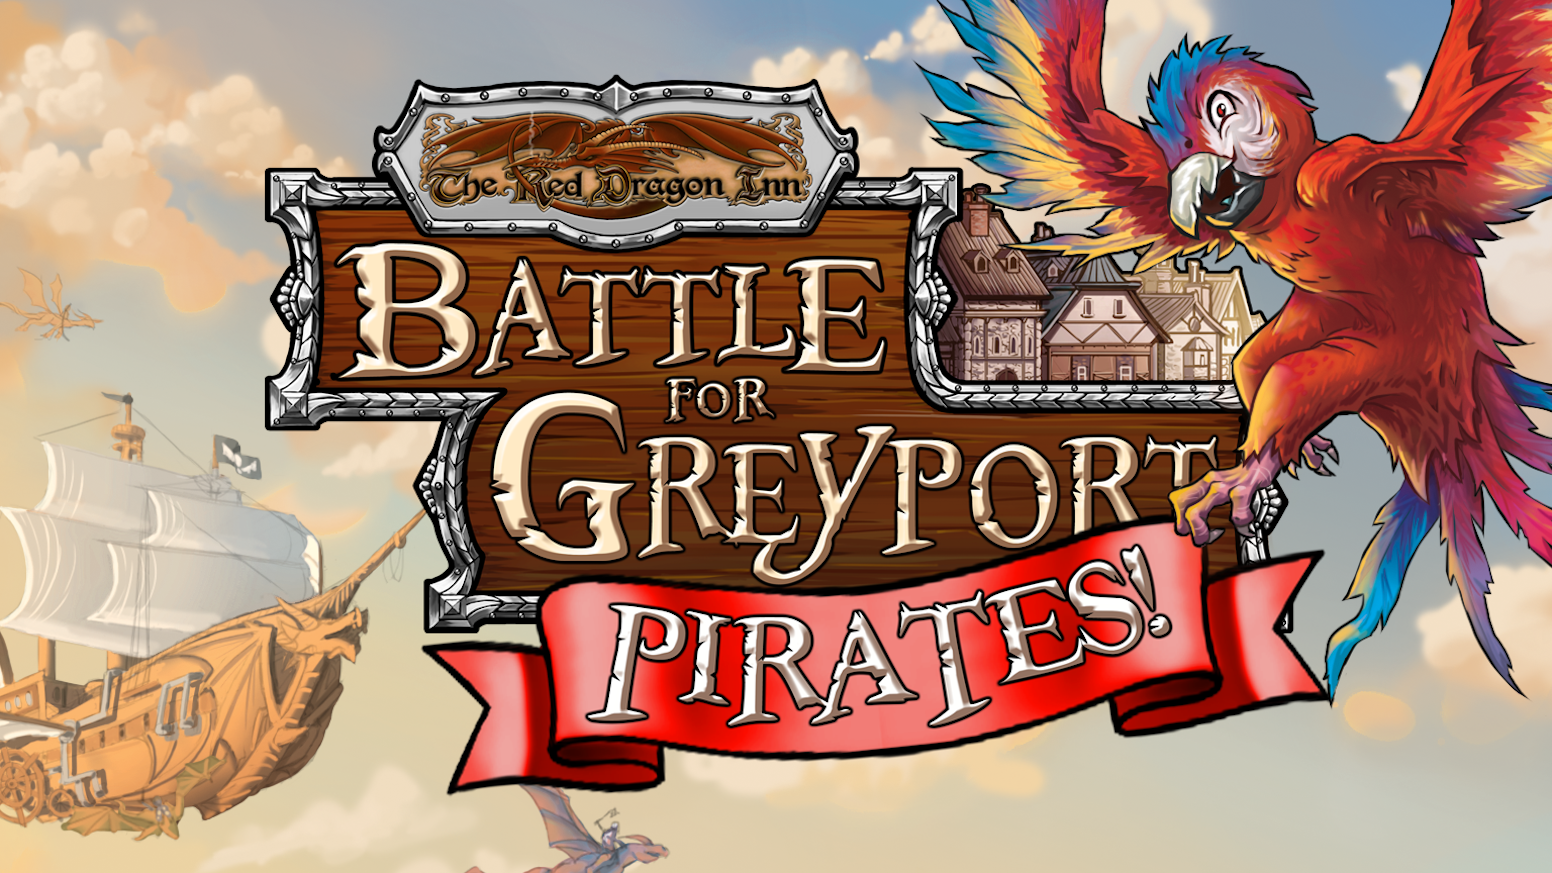 Pirates are attacking! Defend Greyport from new monsters with new heroes in this expansion to the hit cooperative deckbuilding game!